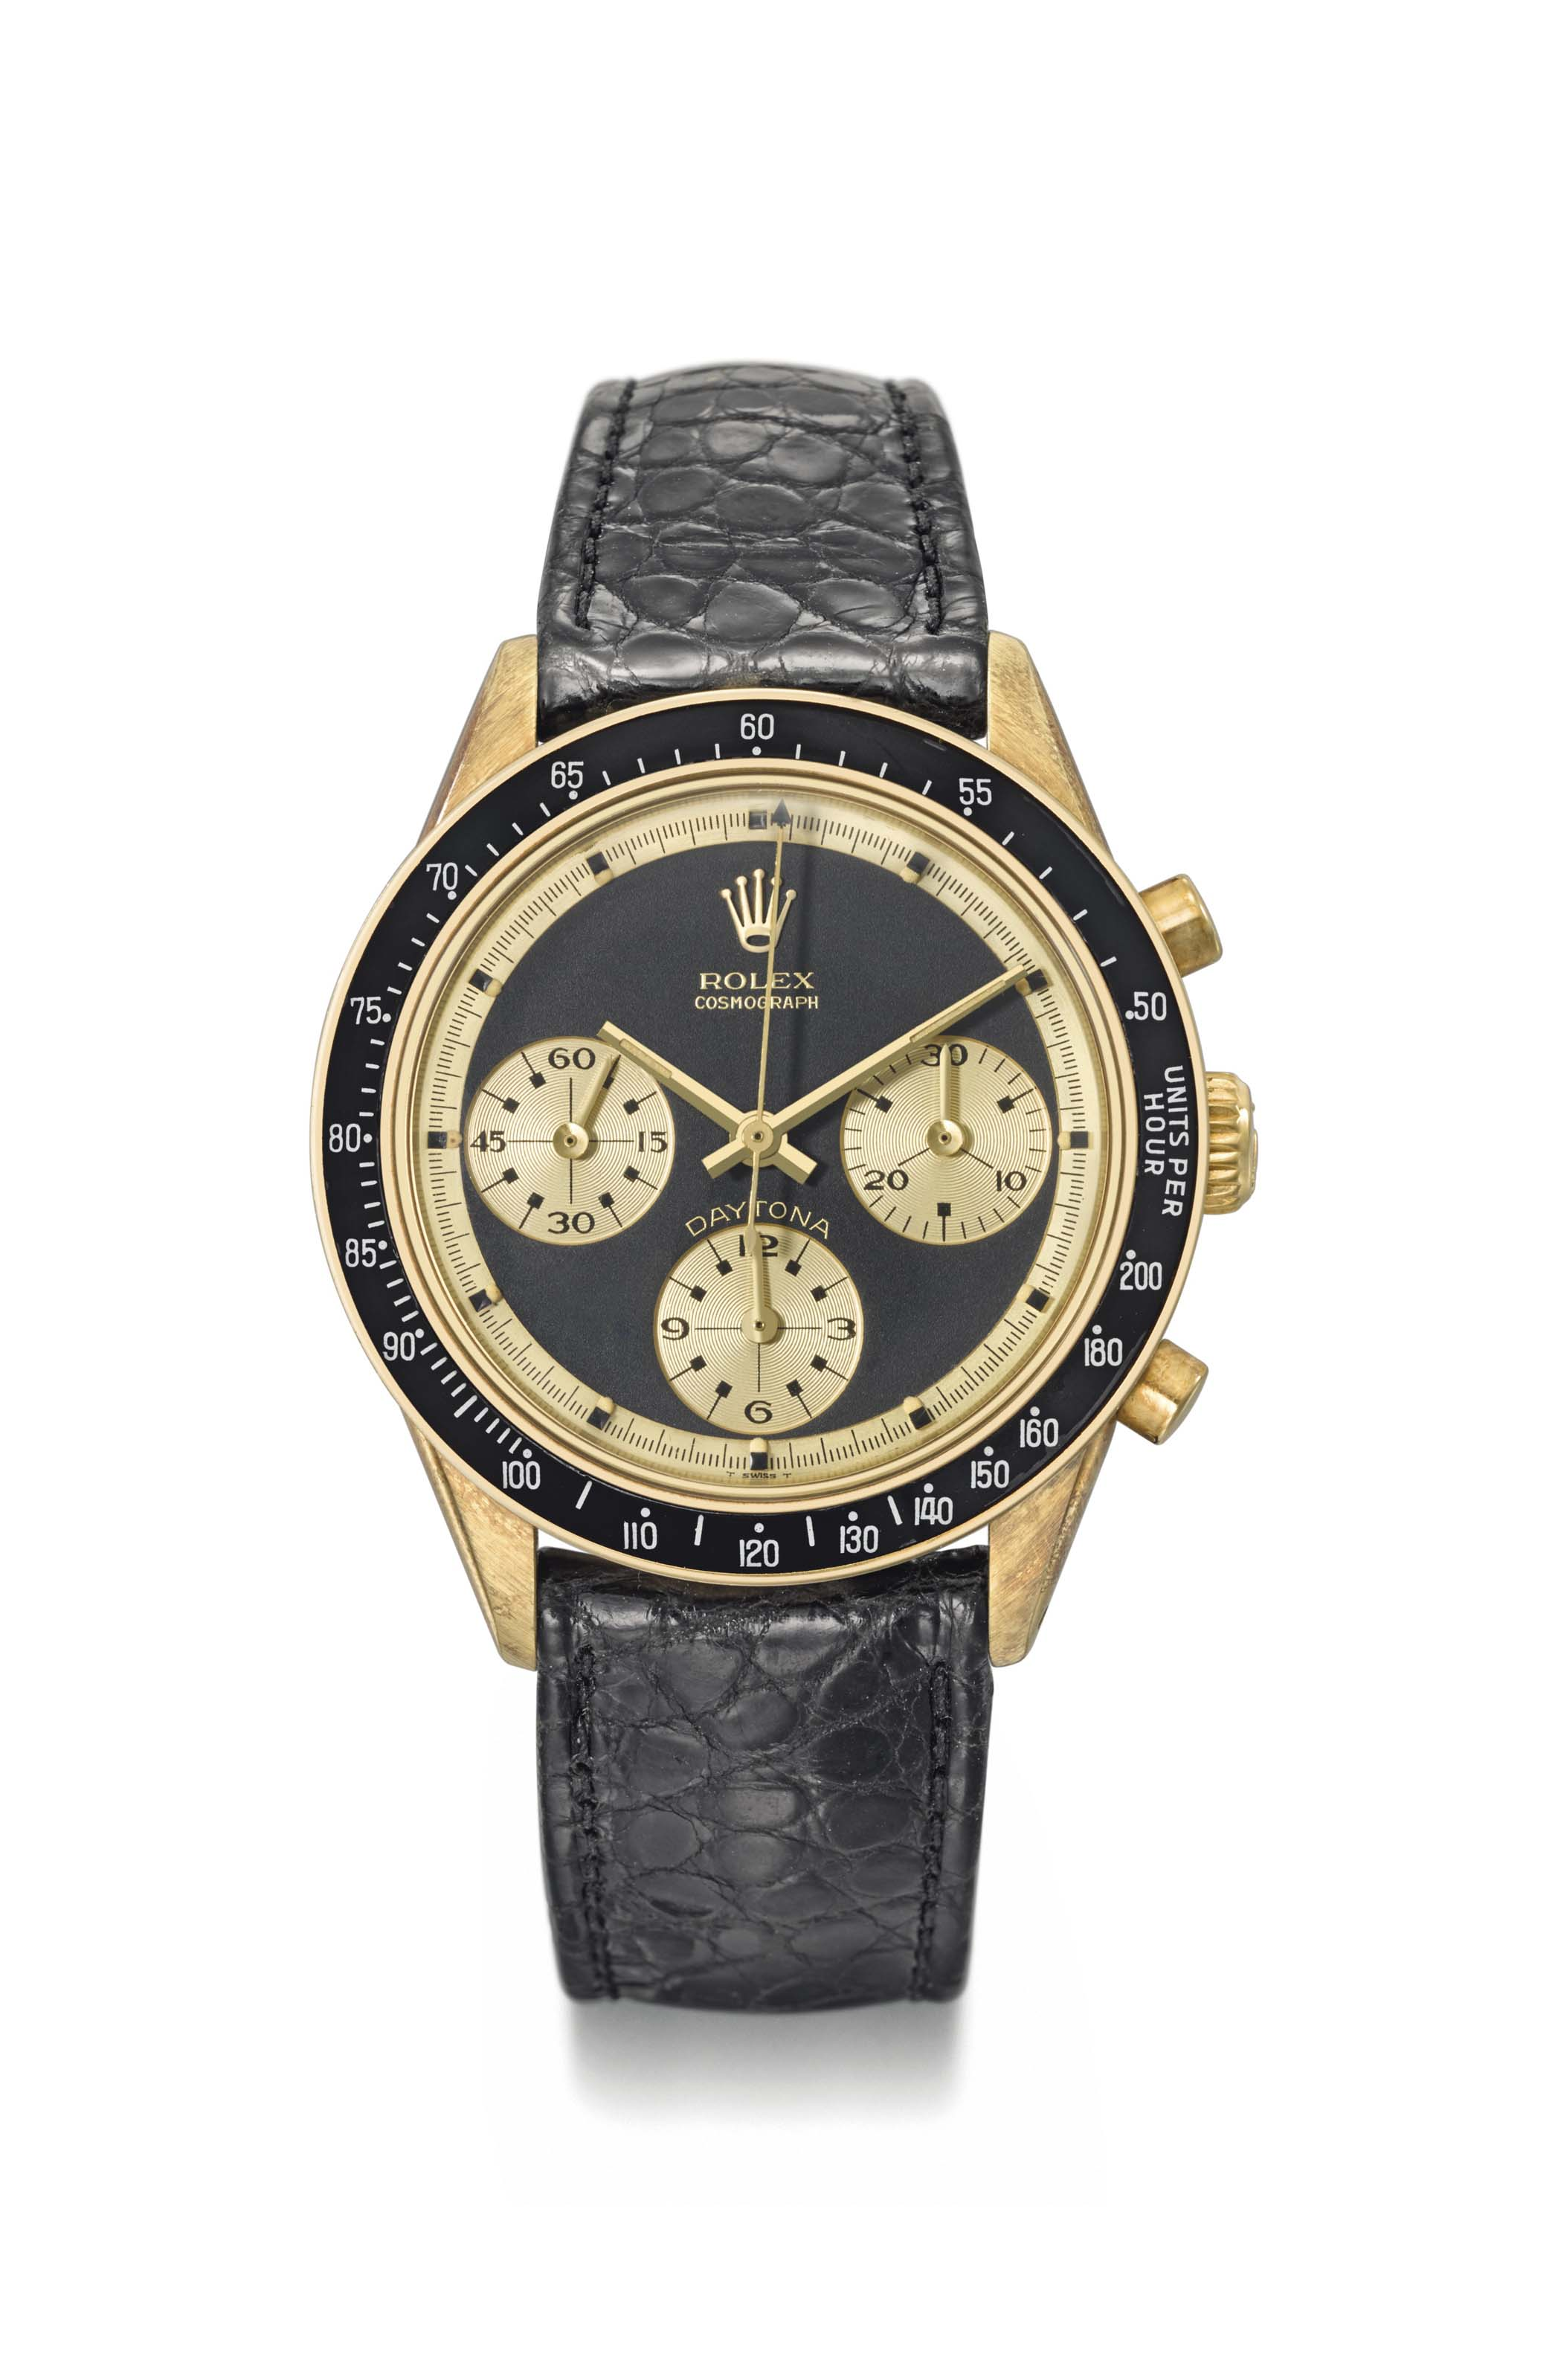 "Rolex. A fine, extremely rare and attractive 14K gold chronograph wristwatch with black ""John Player Special Paul Newman"" dial"